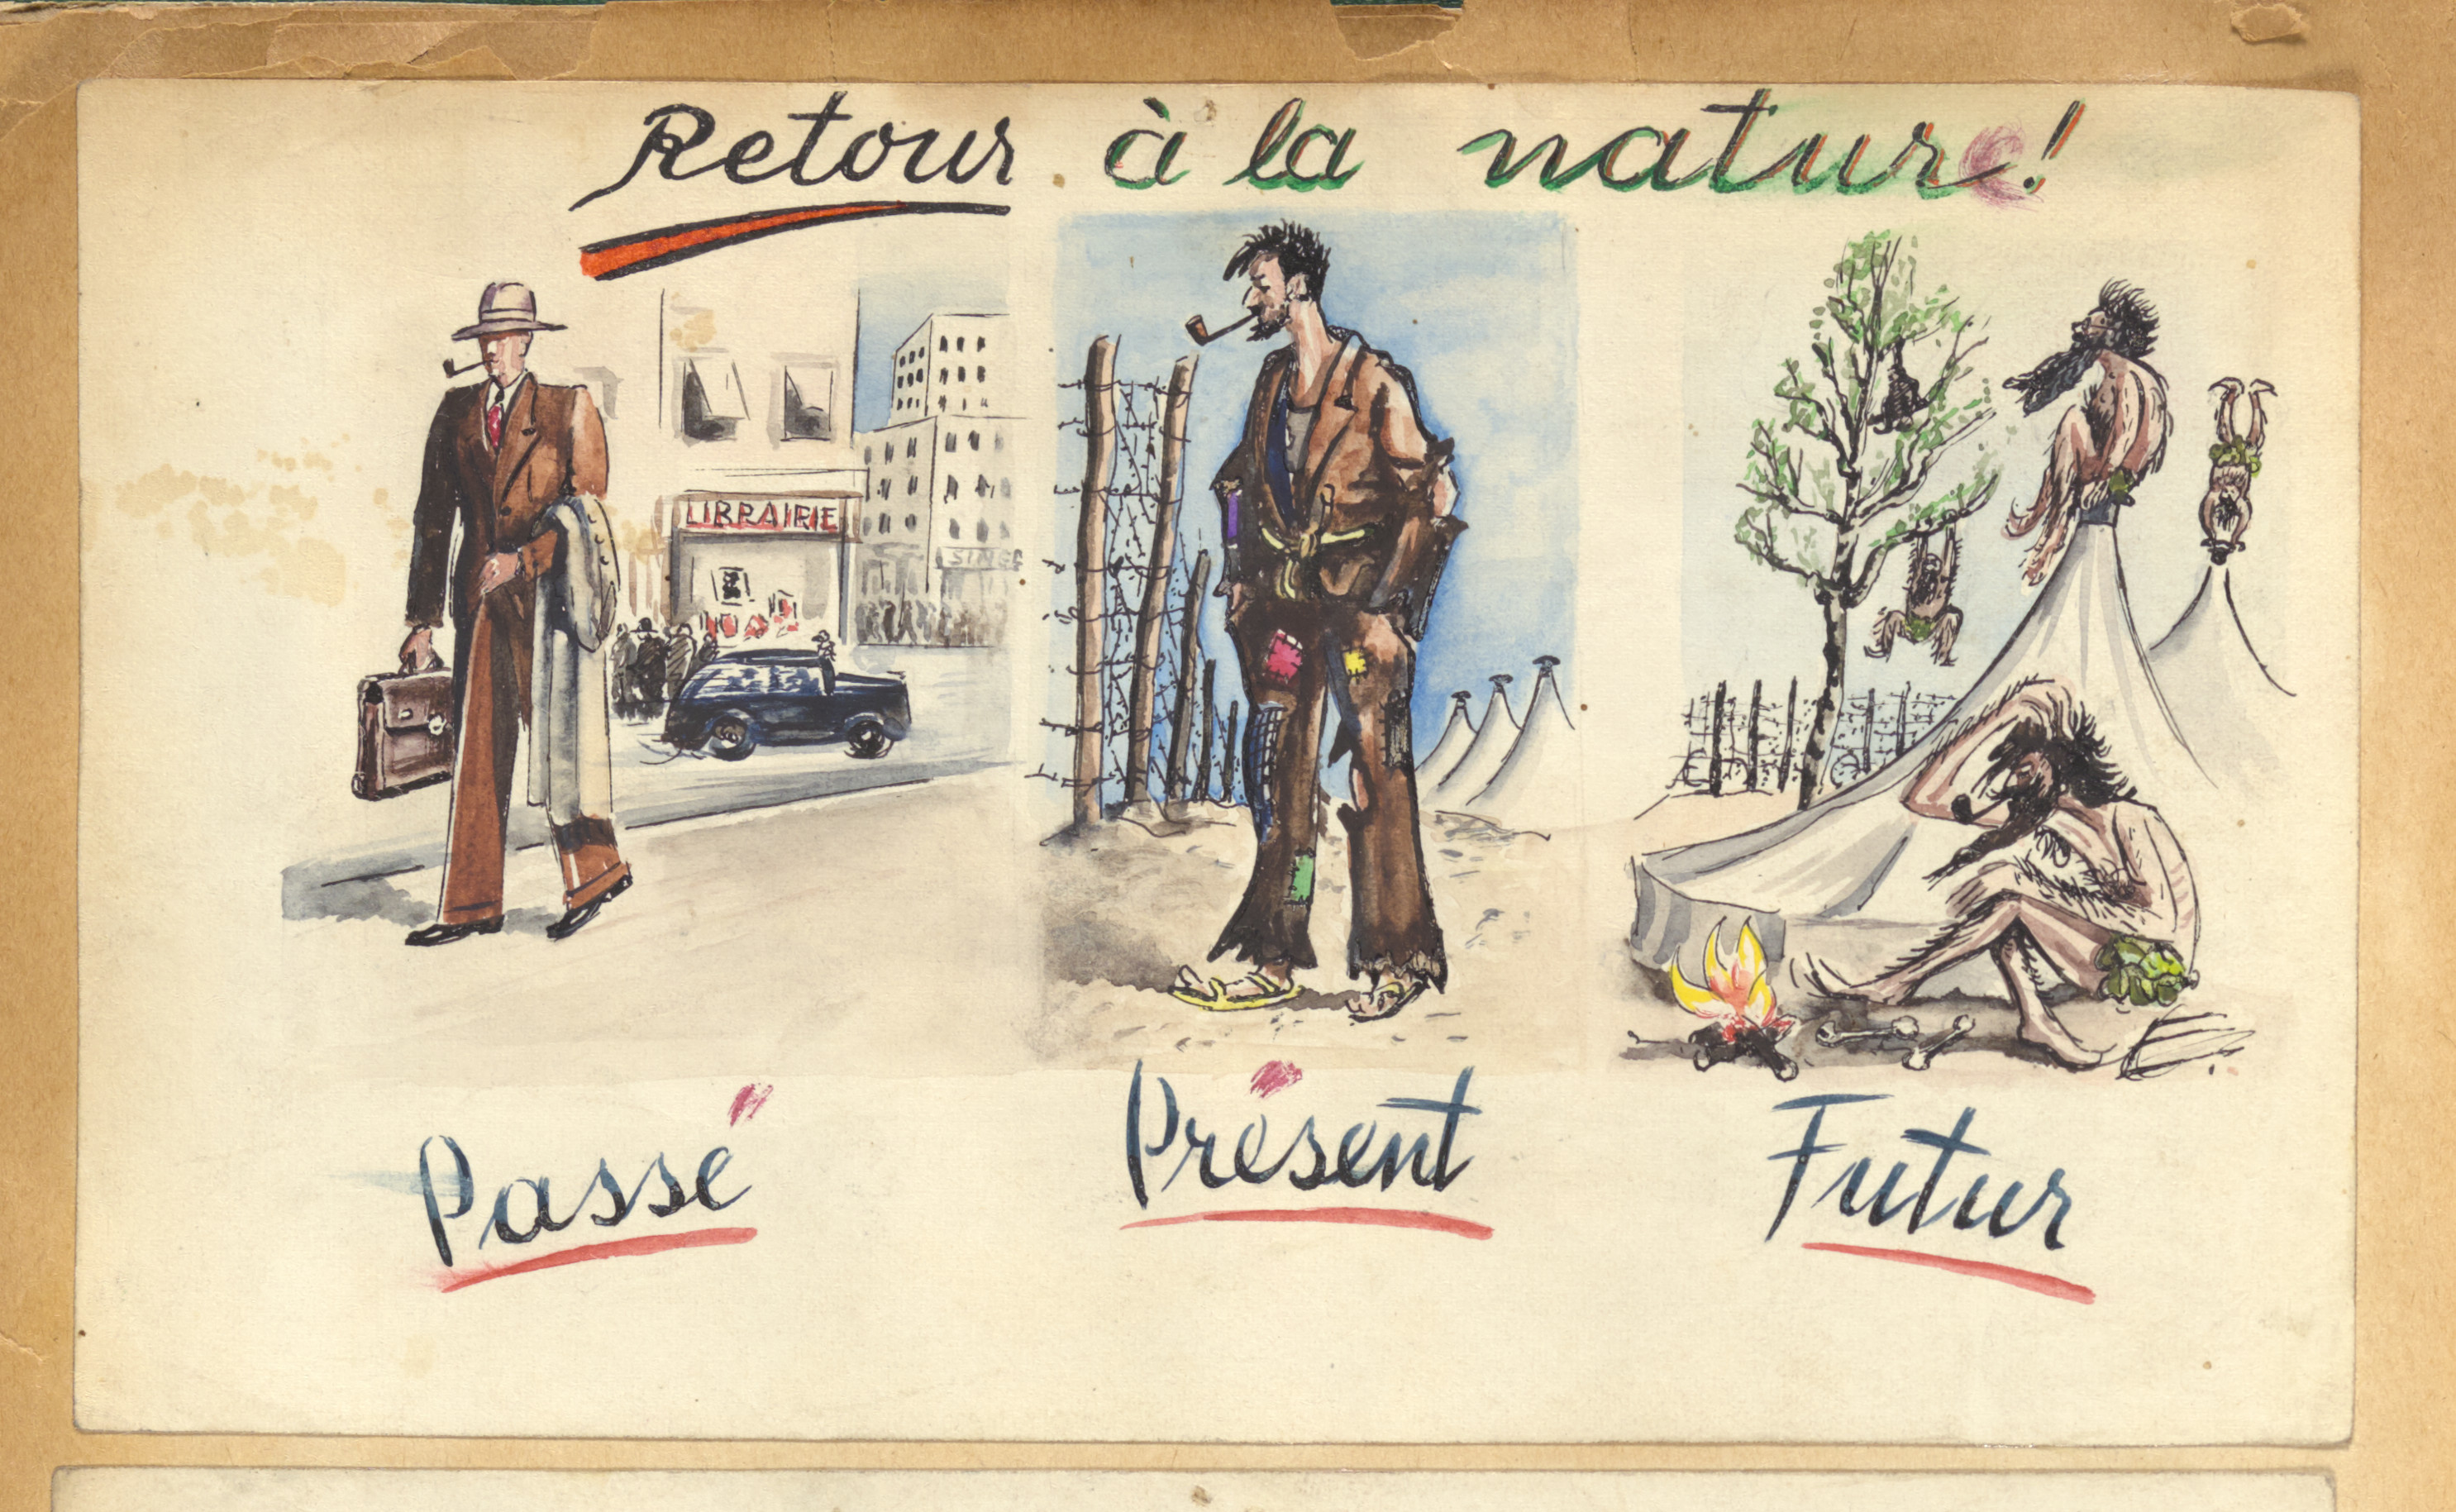 """Sketch from the scrapbook of Donald Coster presented to him during his inspection of the internment camp in Djelfa.  The page is entitled,  """"Return to nature: past, present and future."""""""